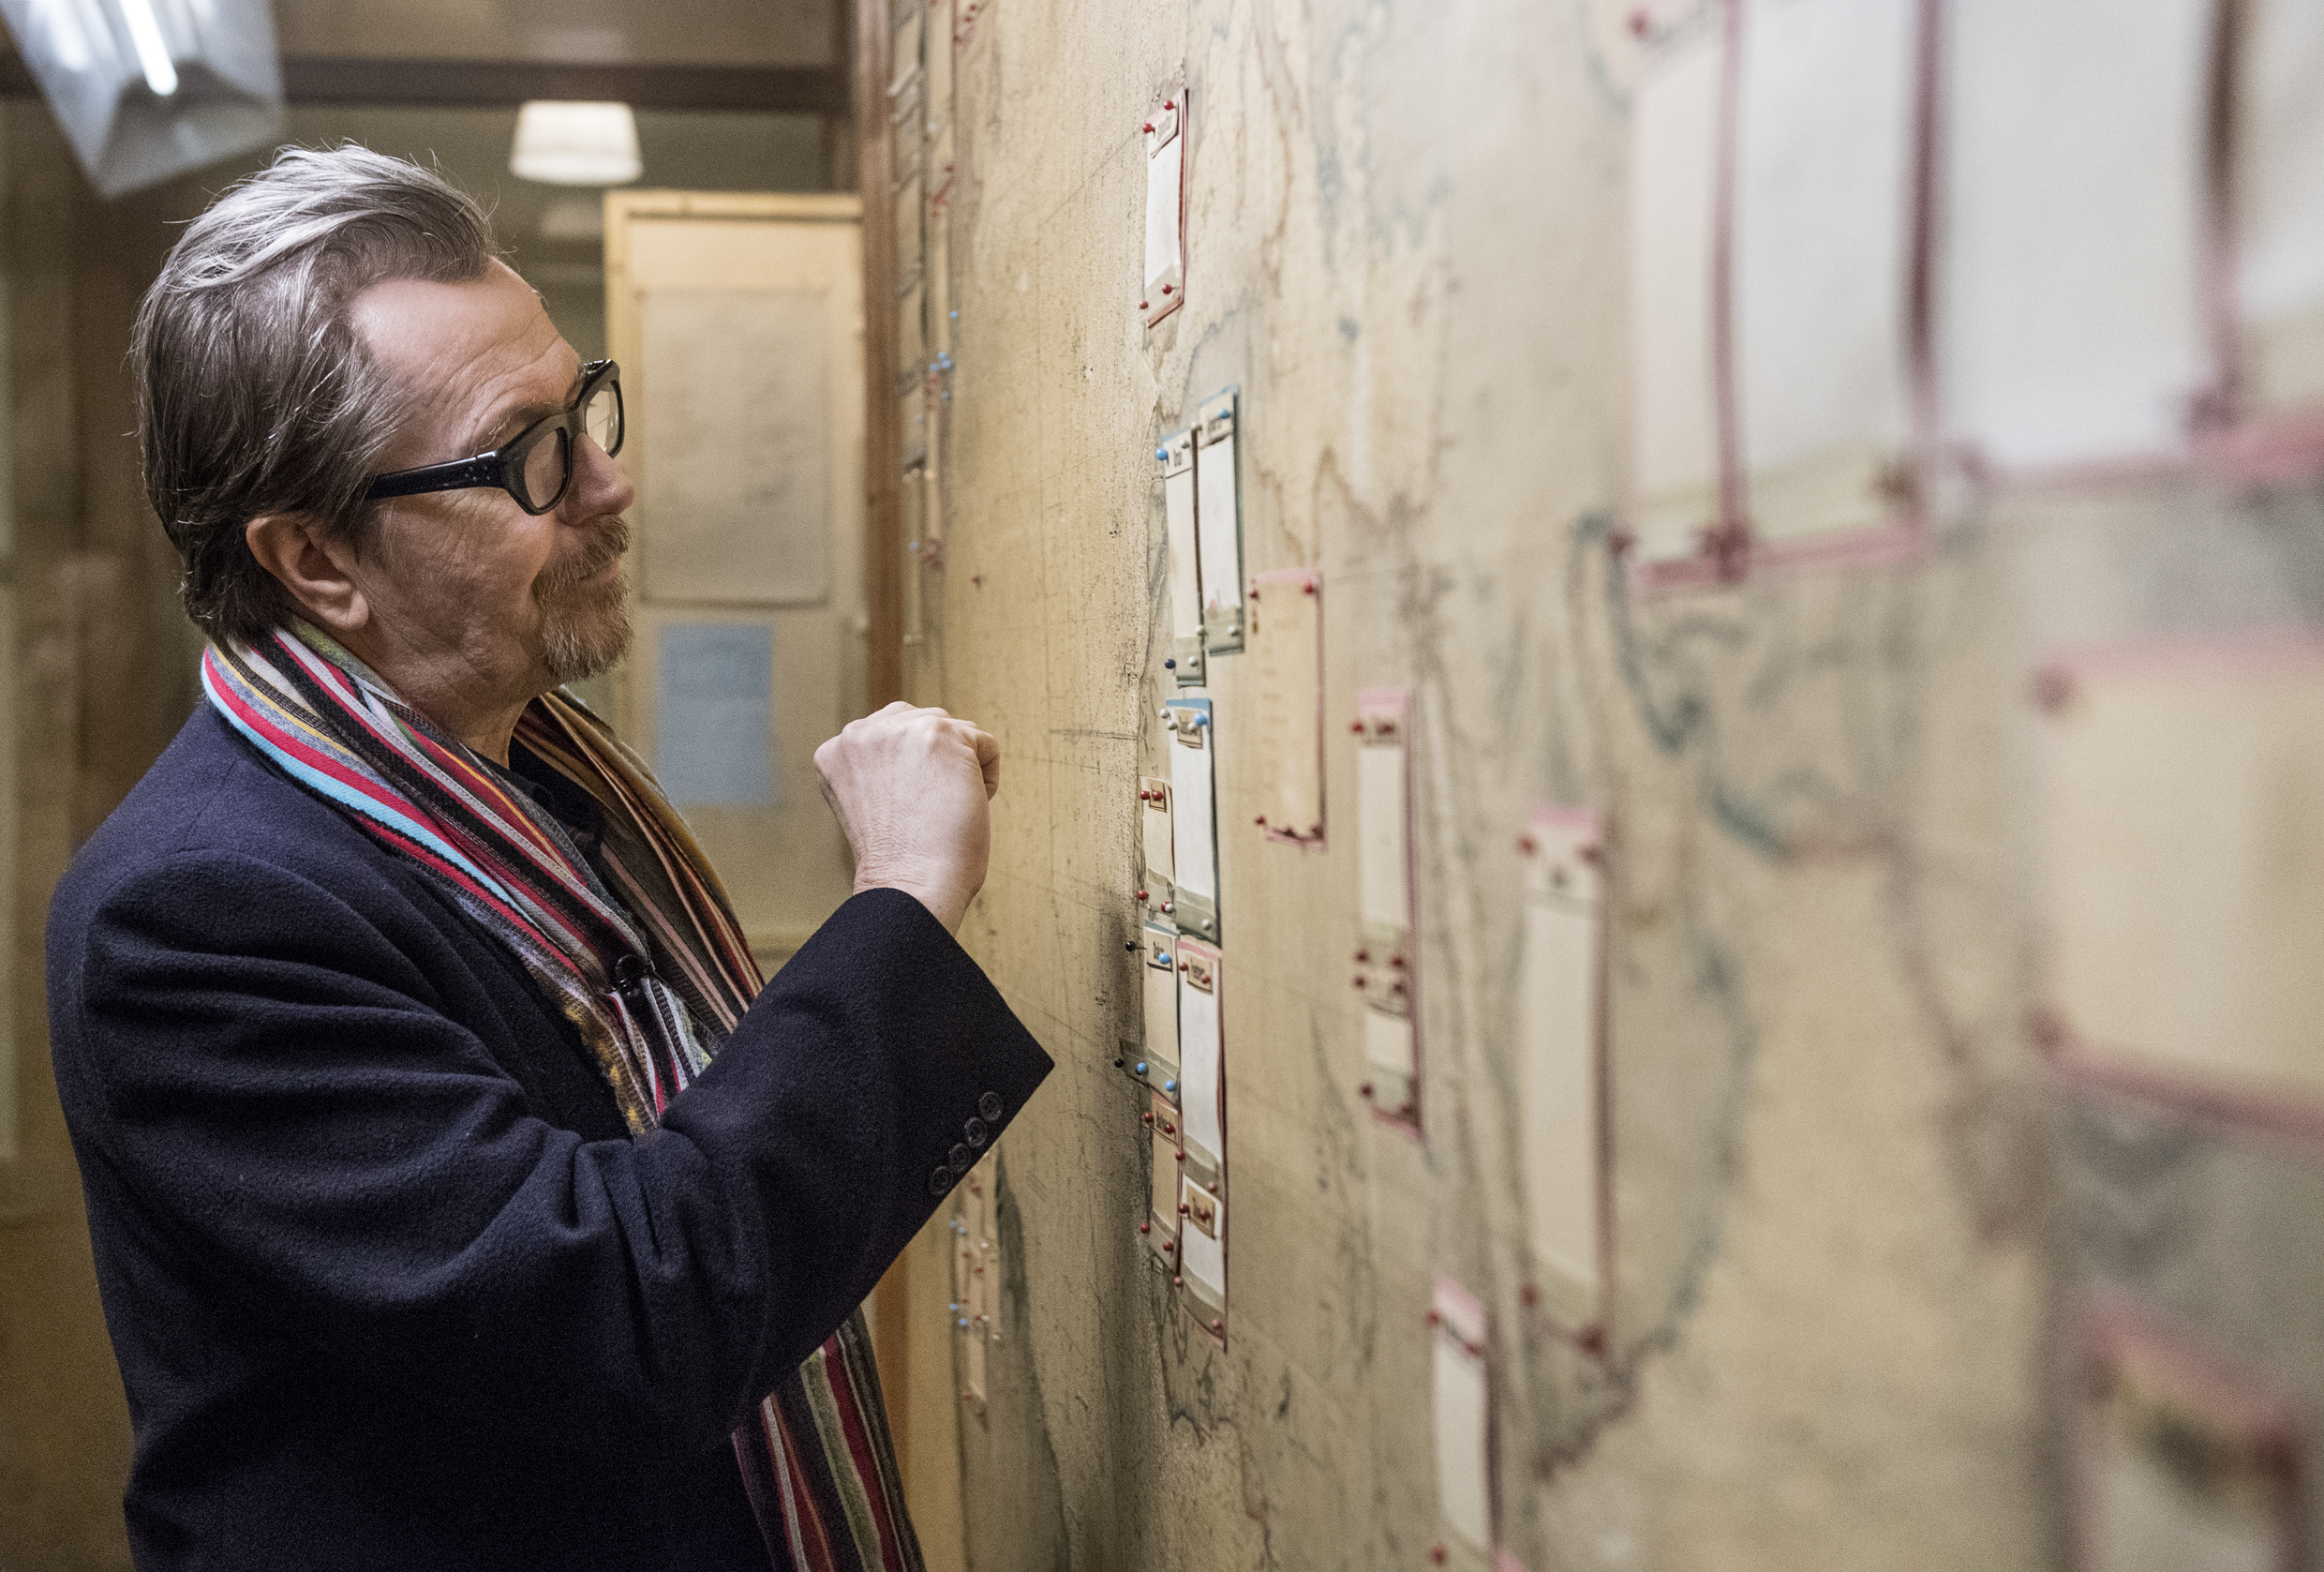 Gary Oldman researching his role as Winston Churchill in the Map Room at Churchill War Rooms